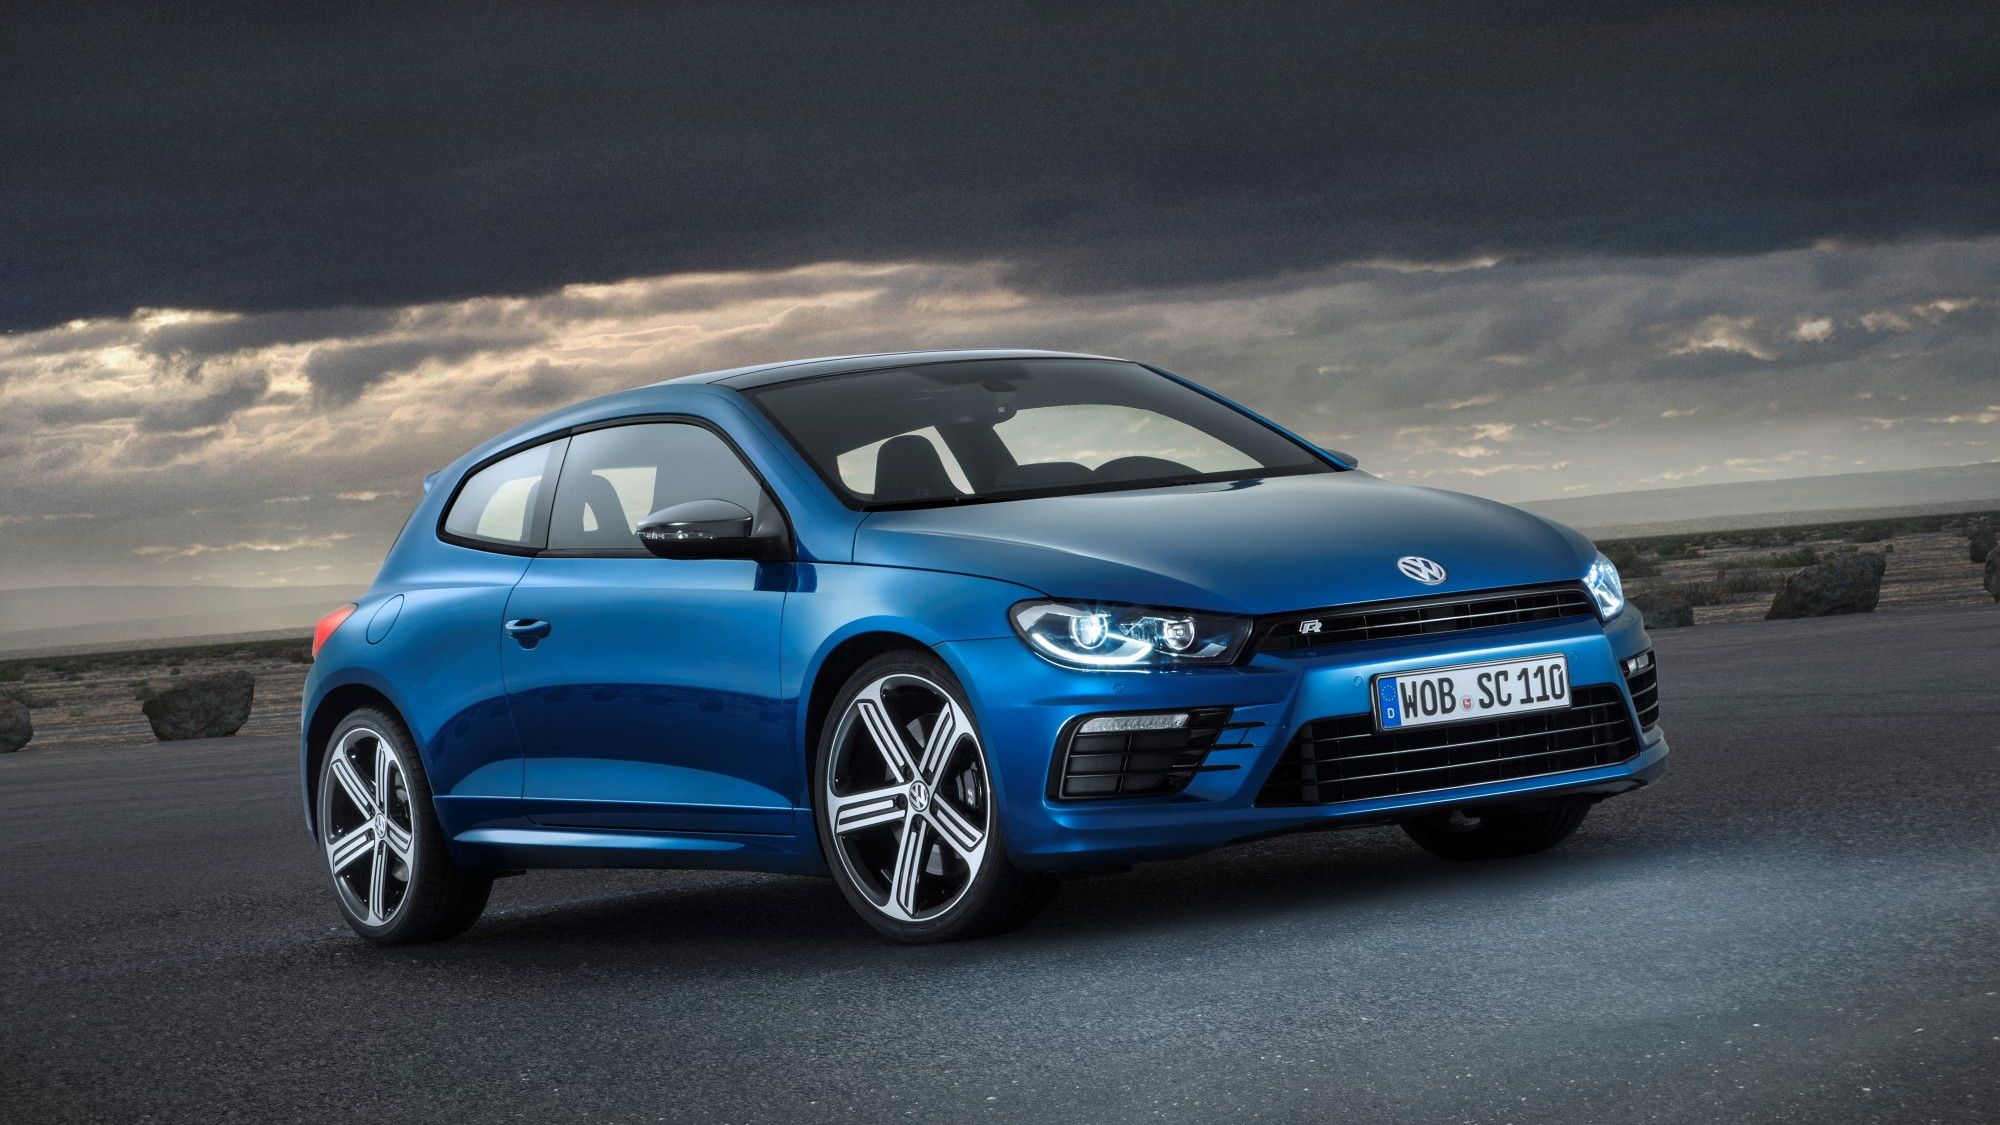 Vw Scirocco Usa >> Volkswagen Kills The Scirocco Hatchback Coupe